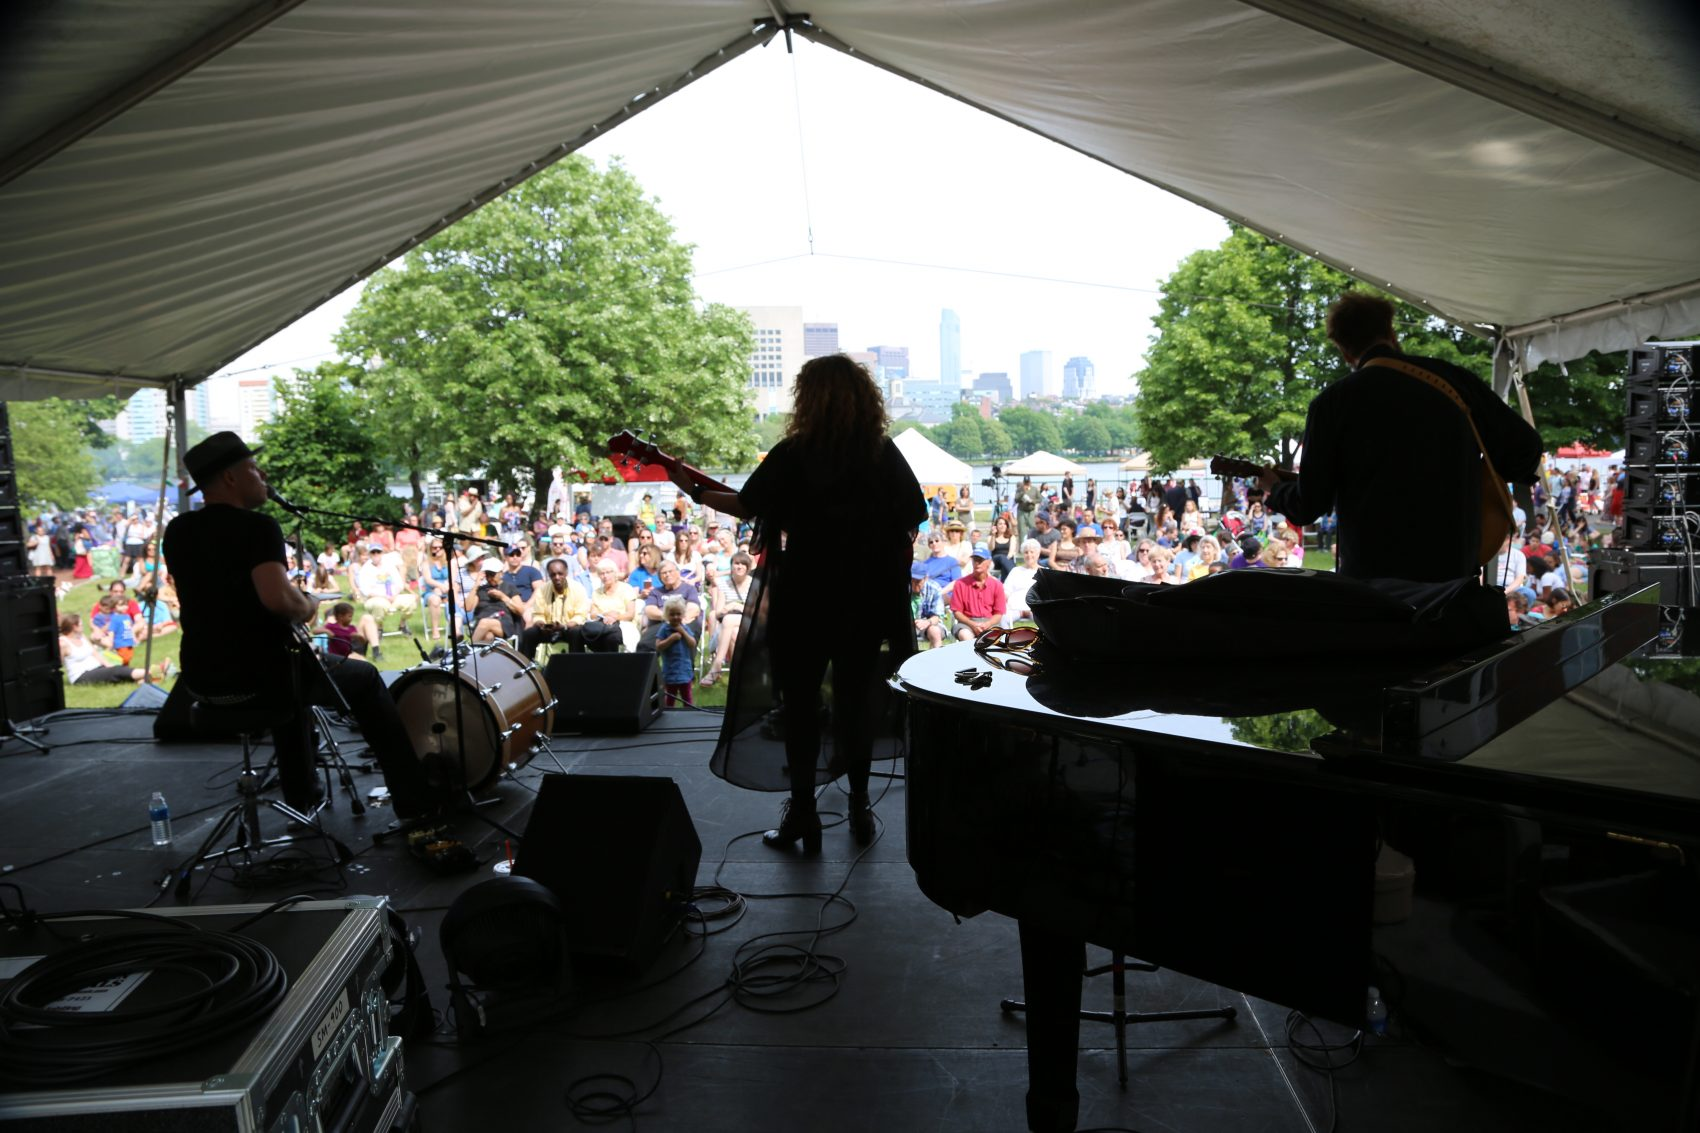 A band plays at the Cambridge River Fest in 2016. (Courtesy Cambridge Arts)